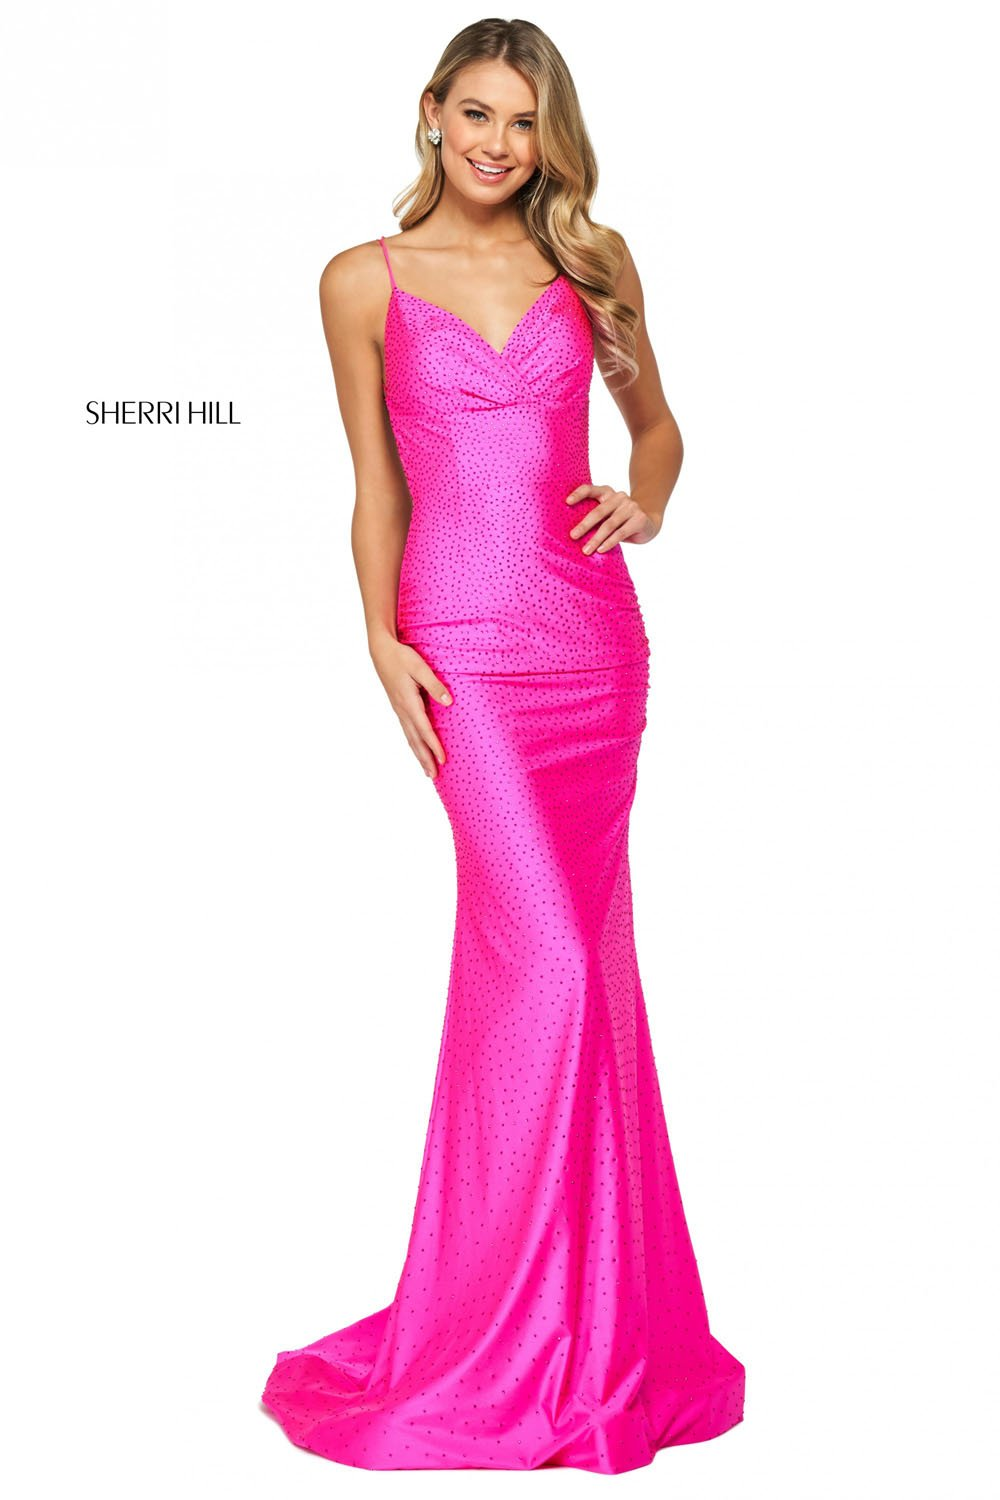 Sherri Hill 53355 prom dress images.  Sherri Hill 53355 is available in these colors: Black, Yellow, Red, Light Blue, Royal, Emerald, Nude, Bright Pink, Gunmetal.